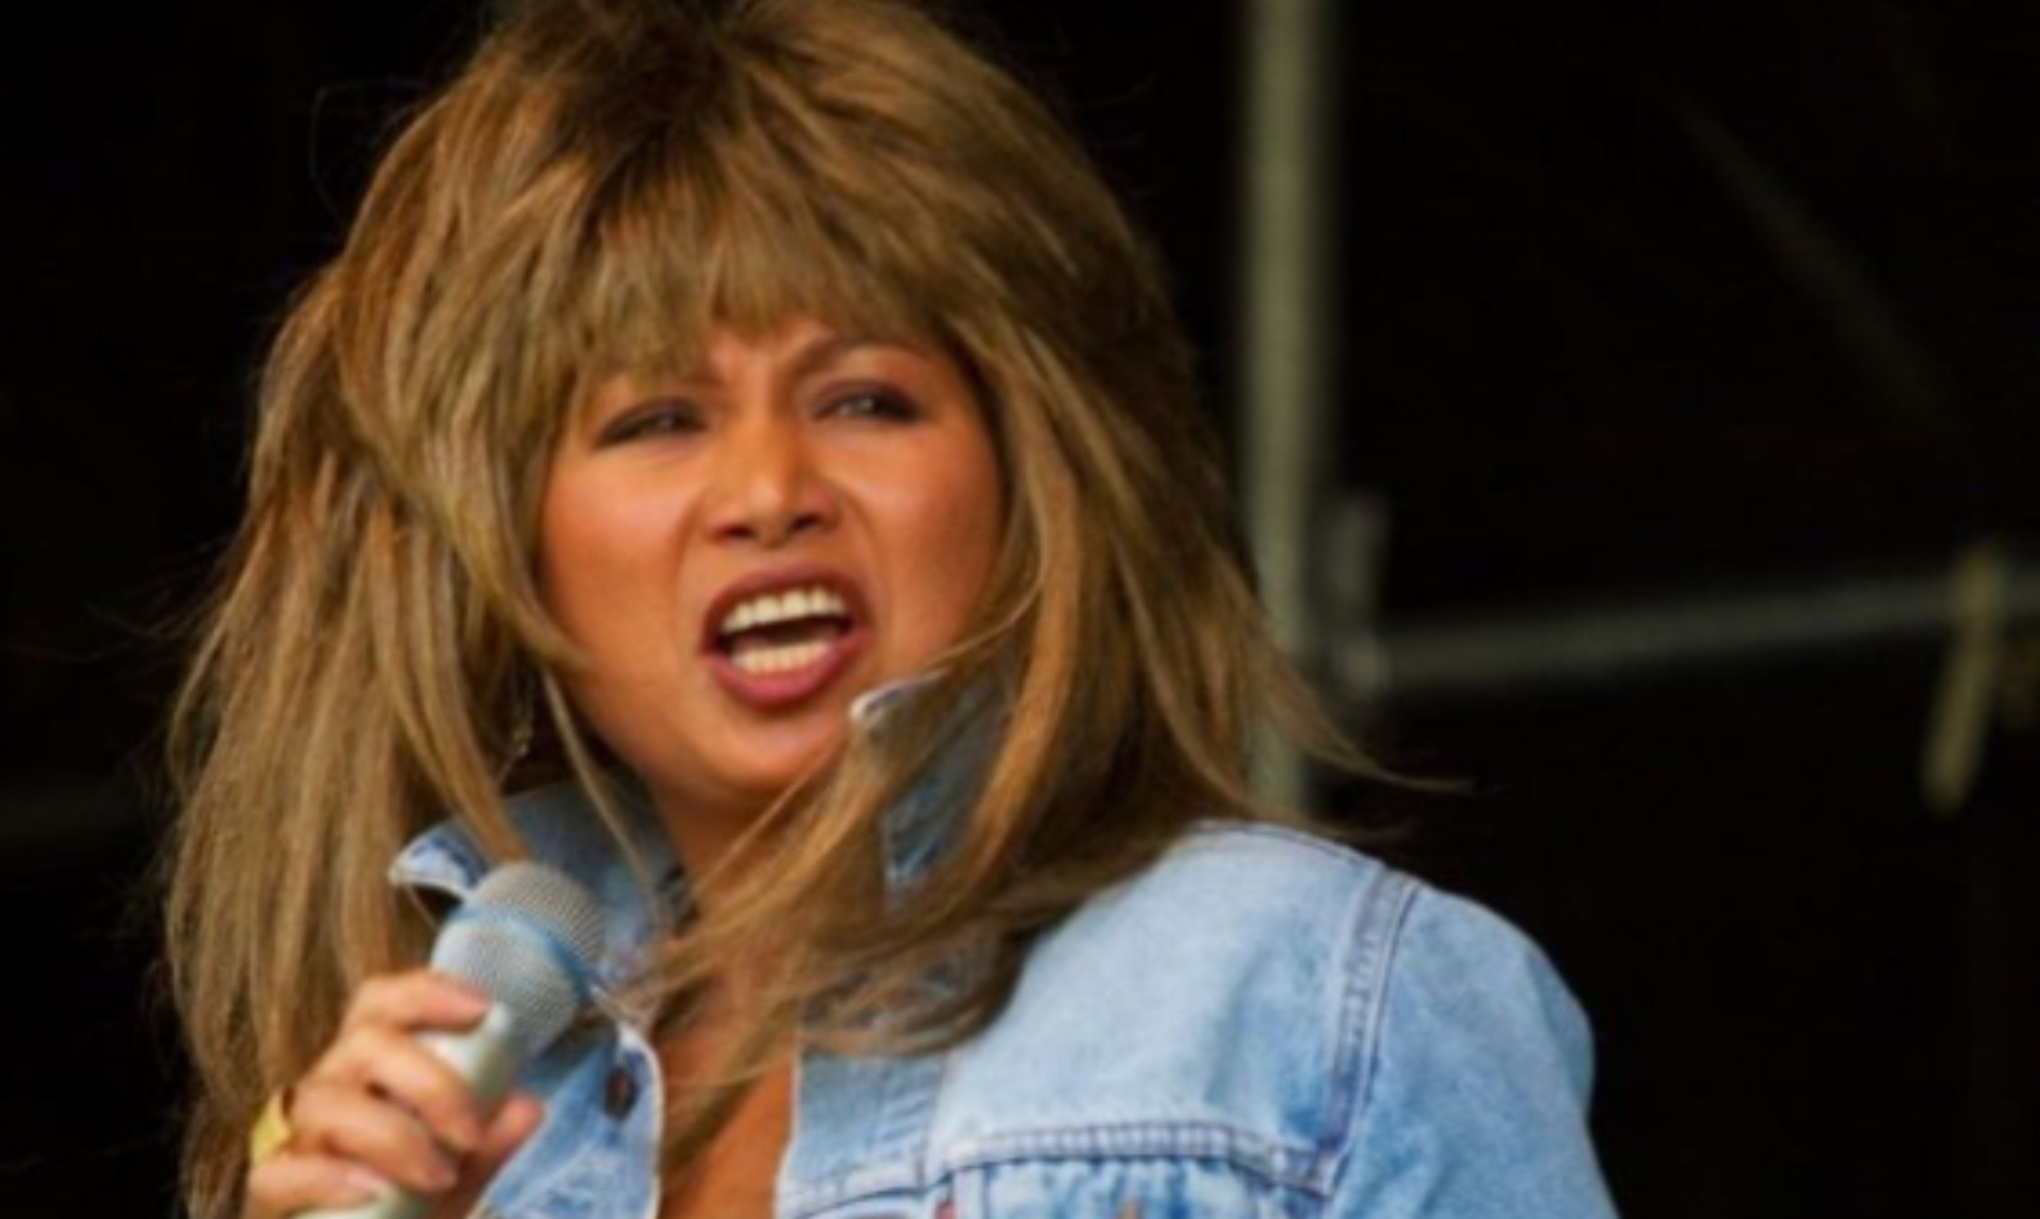 Tina Turner look-a-like